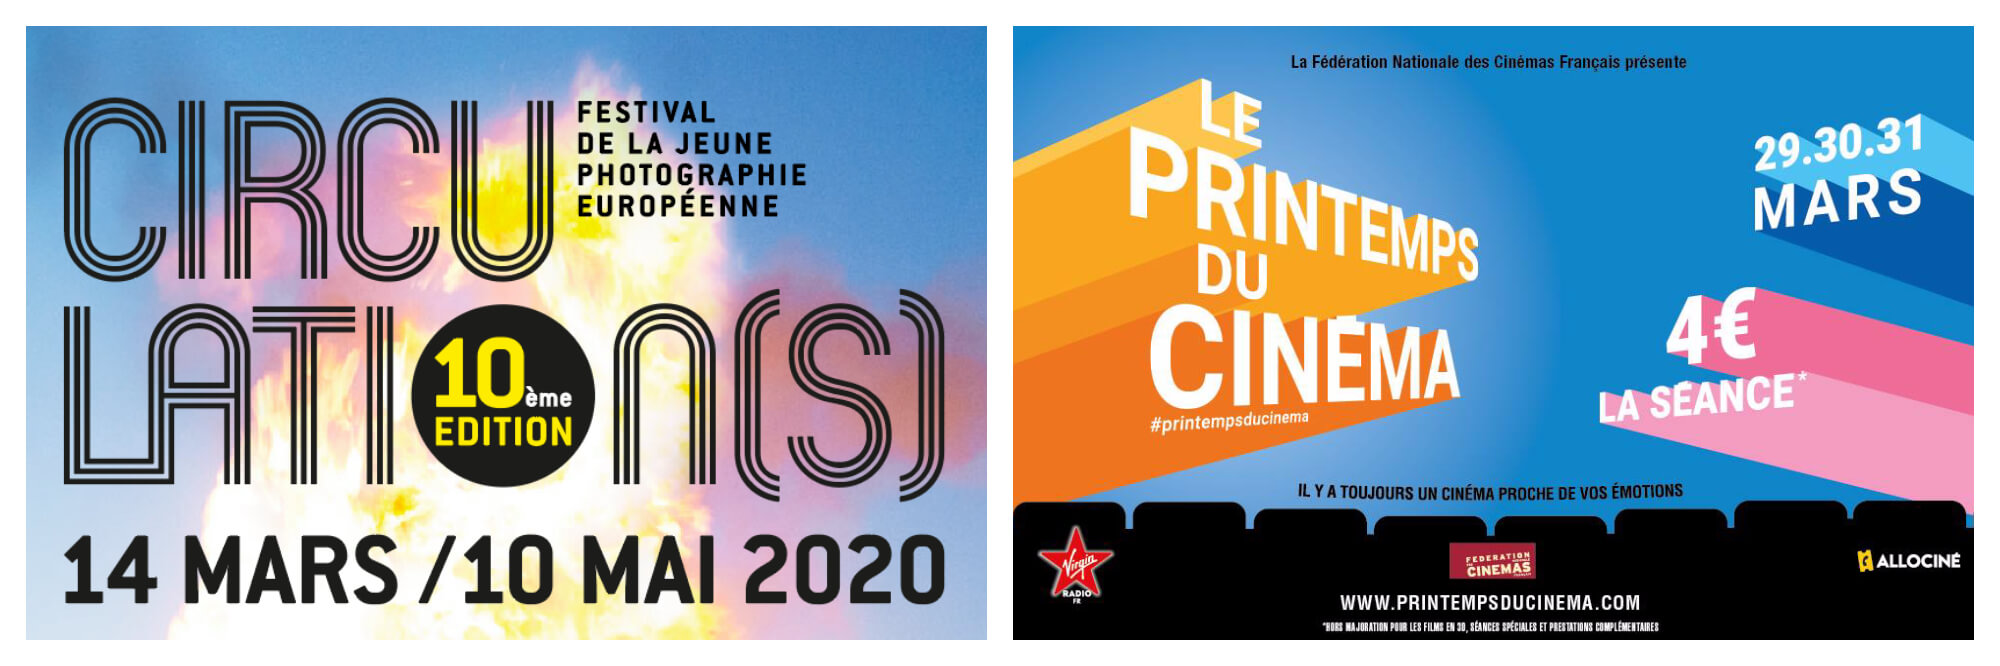 Left, banner for Circulations young photographers' festival in Paris in March. Right, Paris movie festival in March.